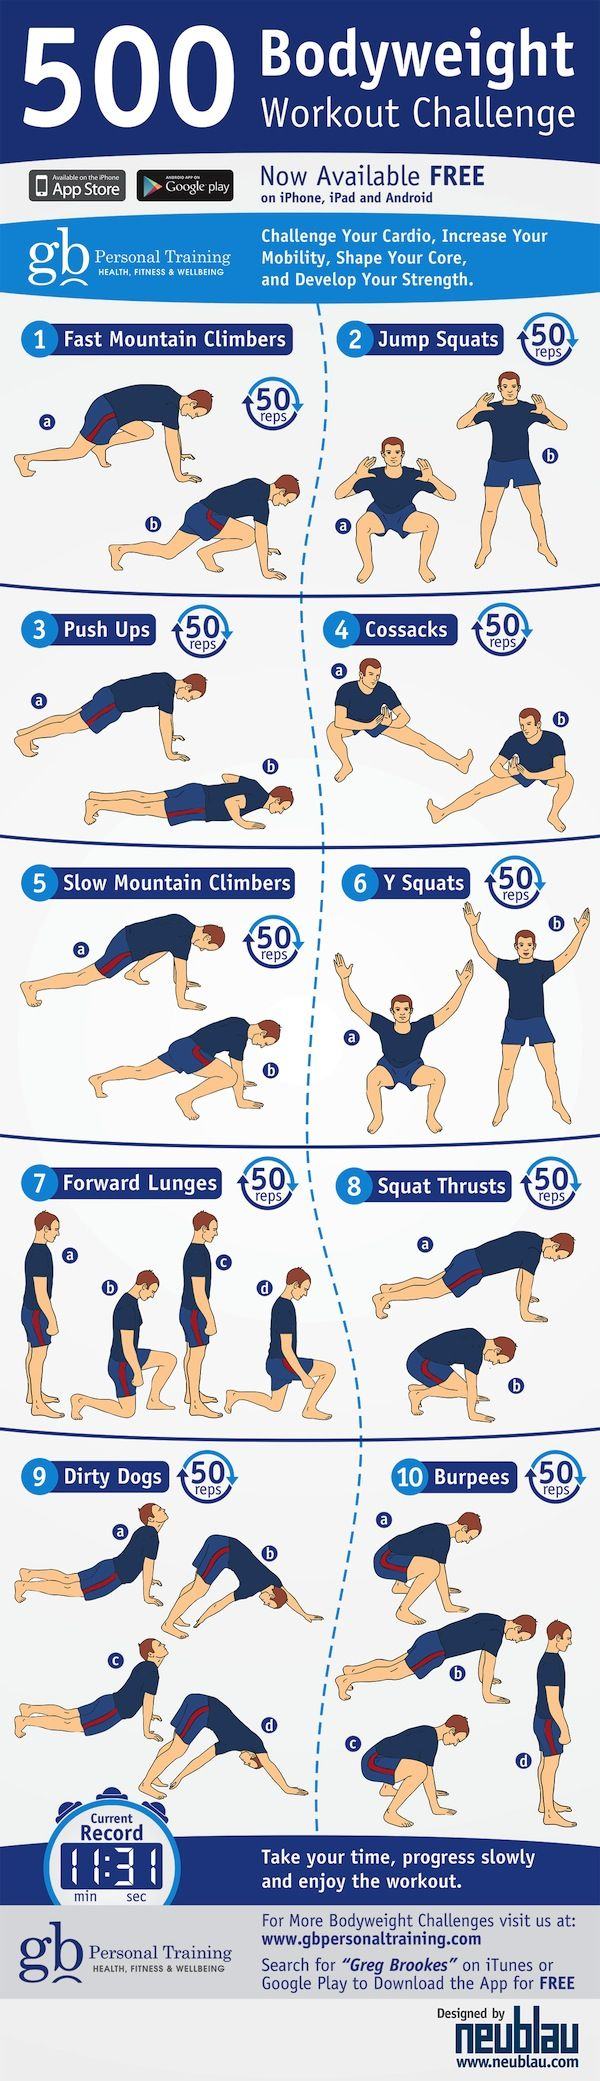 500 Bodyweight Workout Challenge Infographic Best Infographics Bodyweight Workout Workout Challenge Fitness Body